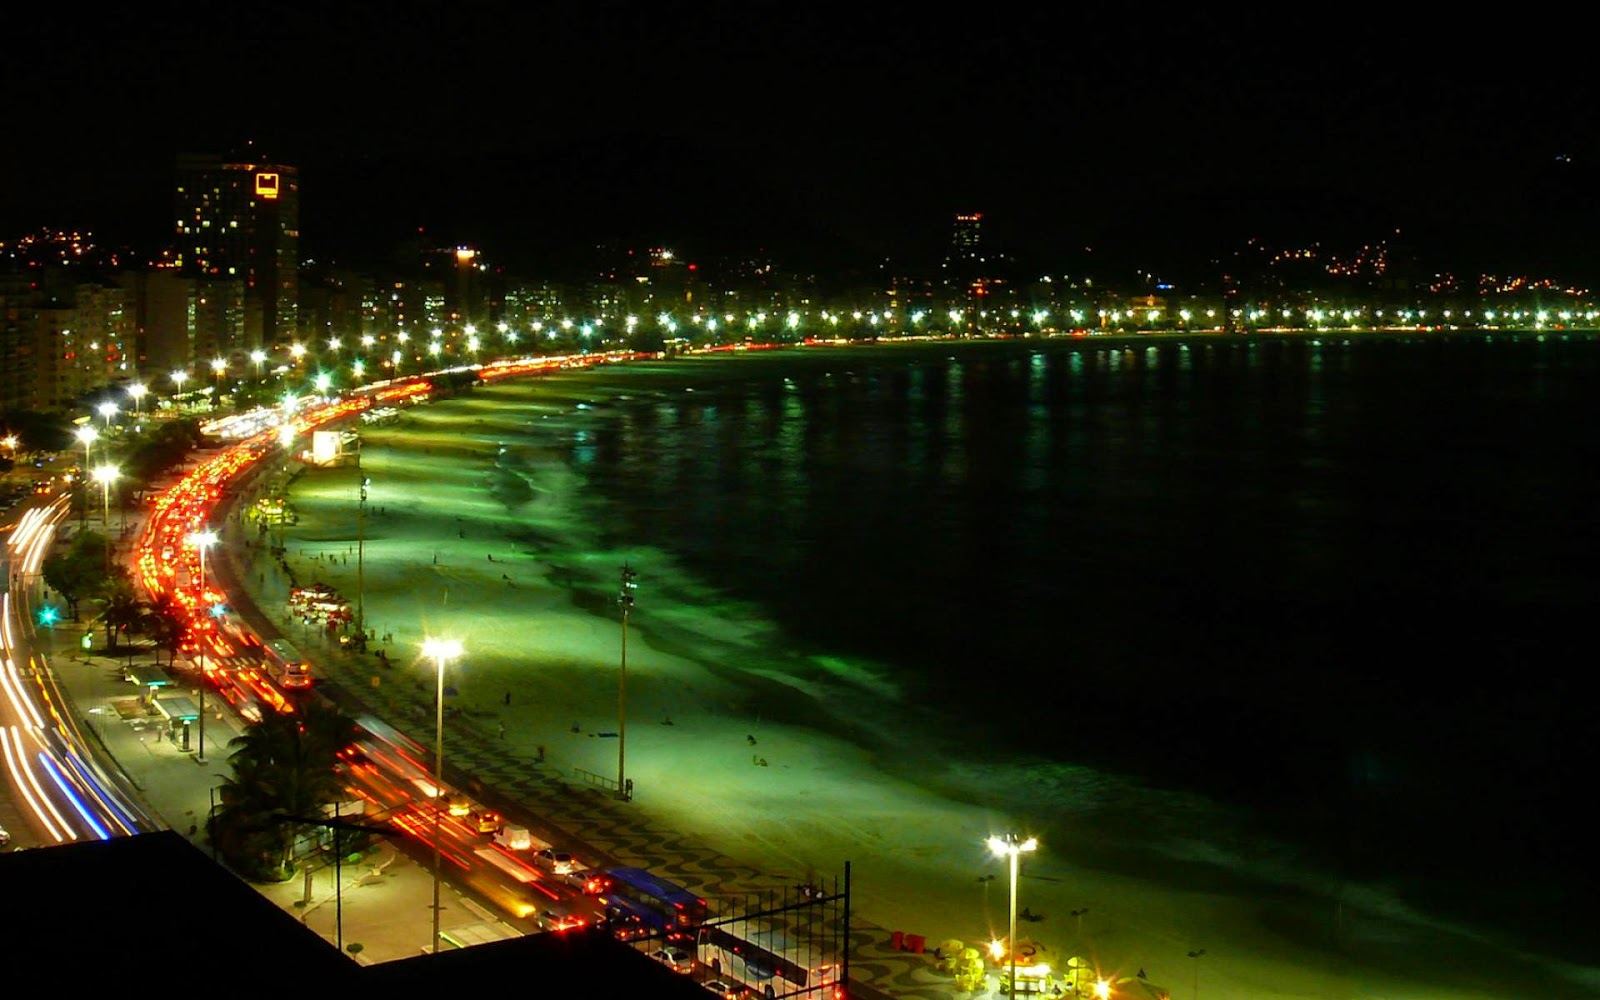 Rio Beach at Night